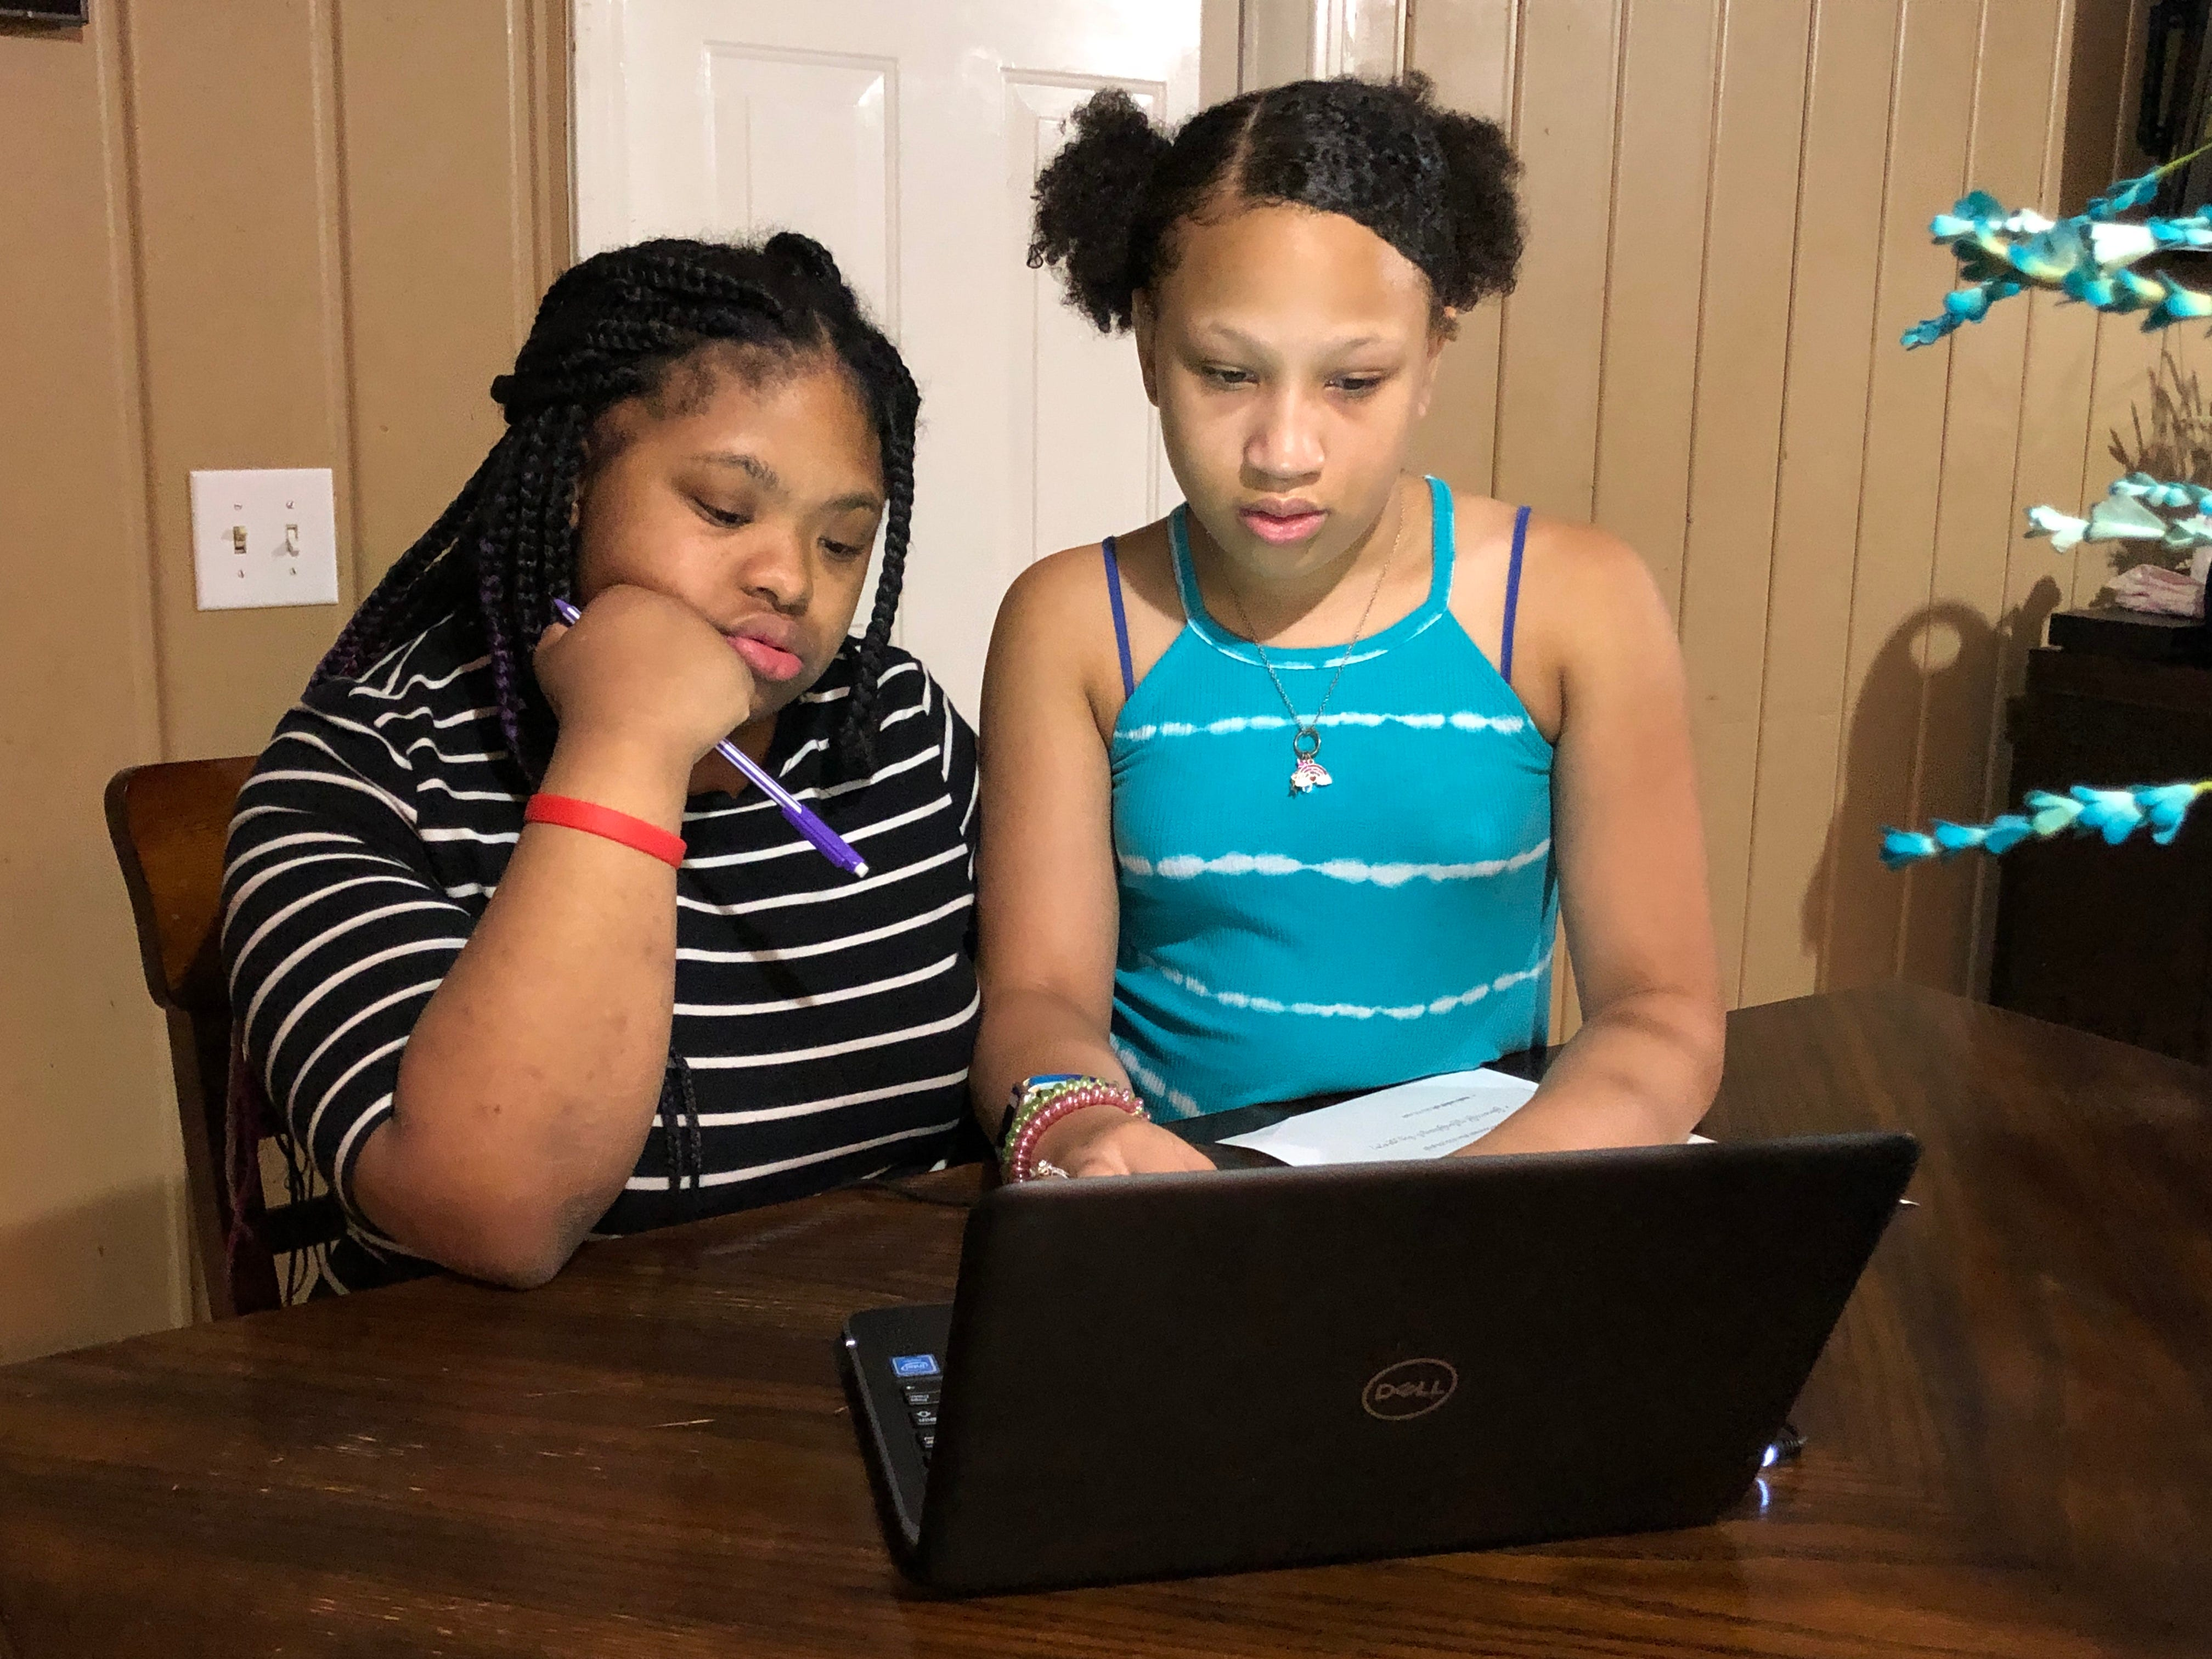 Abigail Alexander, right, a fifth grader at Head Middle Magnet School, helps her sister, Anaya, an exceptional education student at Maplewood High School, try to sign in online for the first day of virtual learning for Metro Nashville Public Schools on Aug. 4.